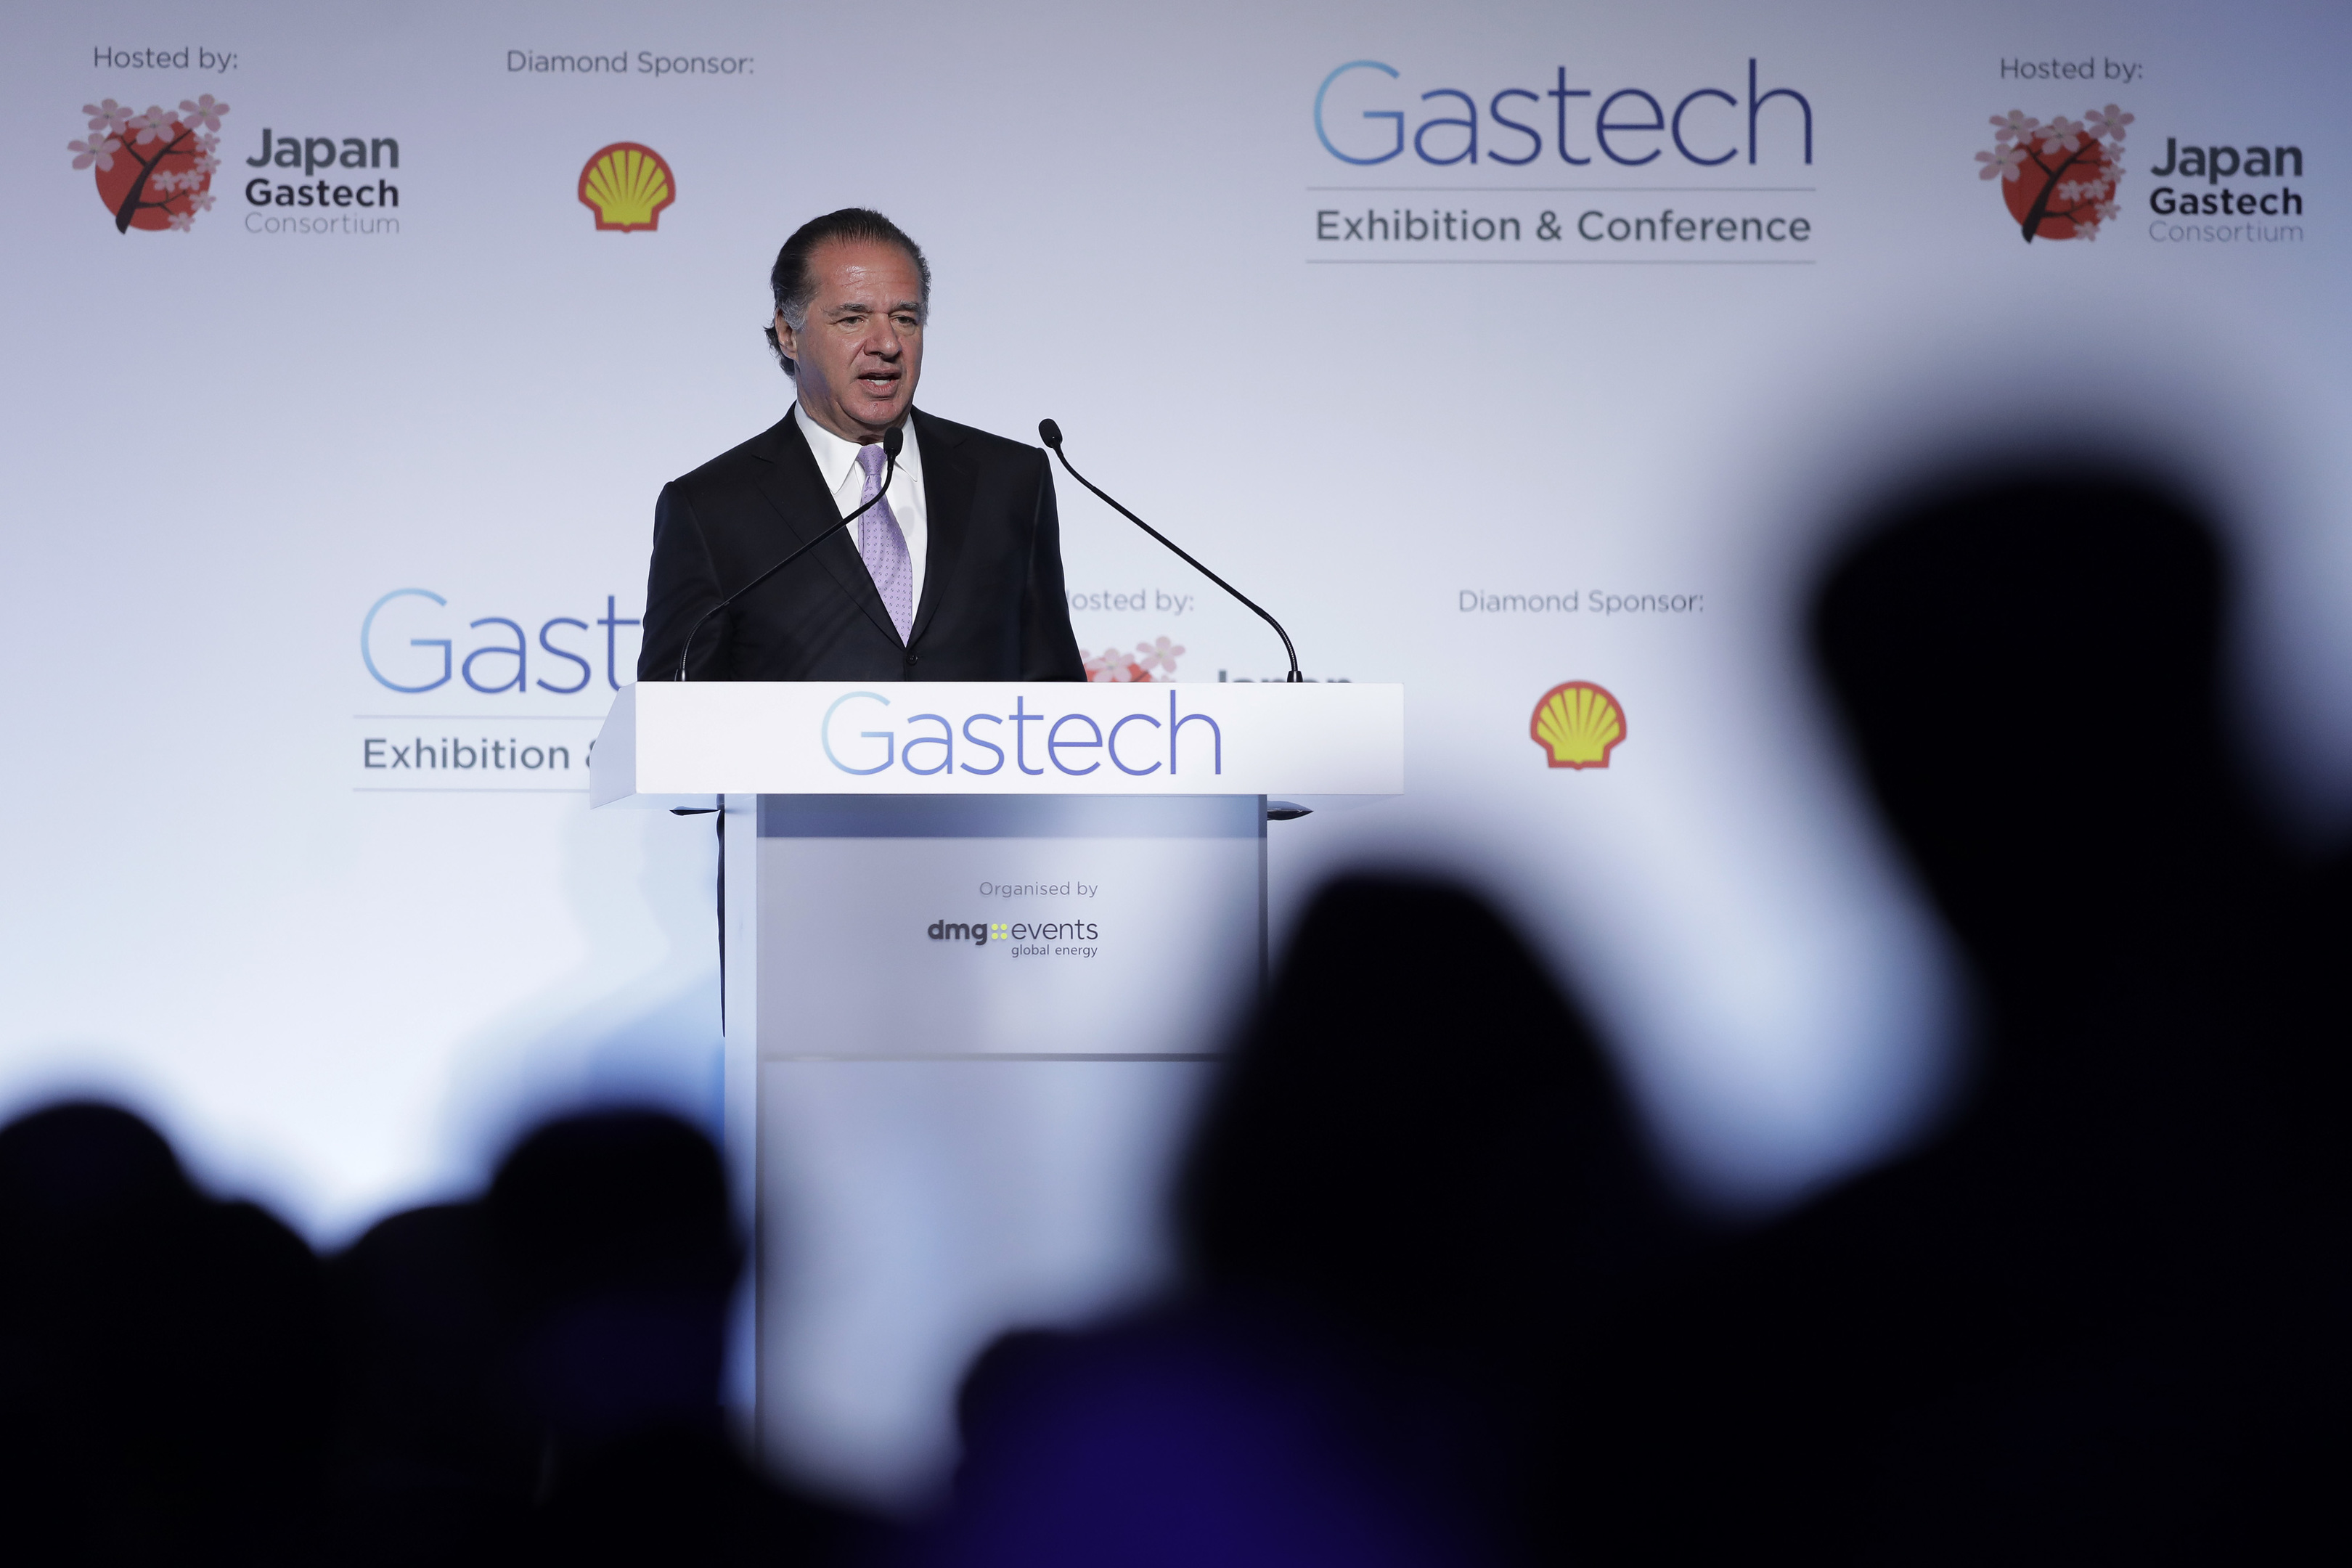 Charif Souki, co-founder and chairman of Tellurian Inc., speaks at the Gastech Exhibition & Conference in Chiba, Japan, on Tuesday, April 4, 2017. The global gas and liquefied natural gas (LNG) conference will continue until April 7. Photographer: Kiyoshi Ota/Bloomberg